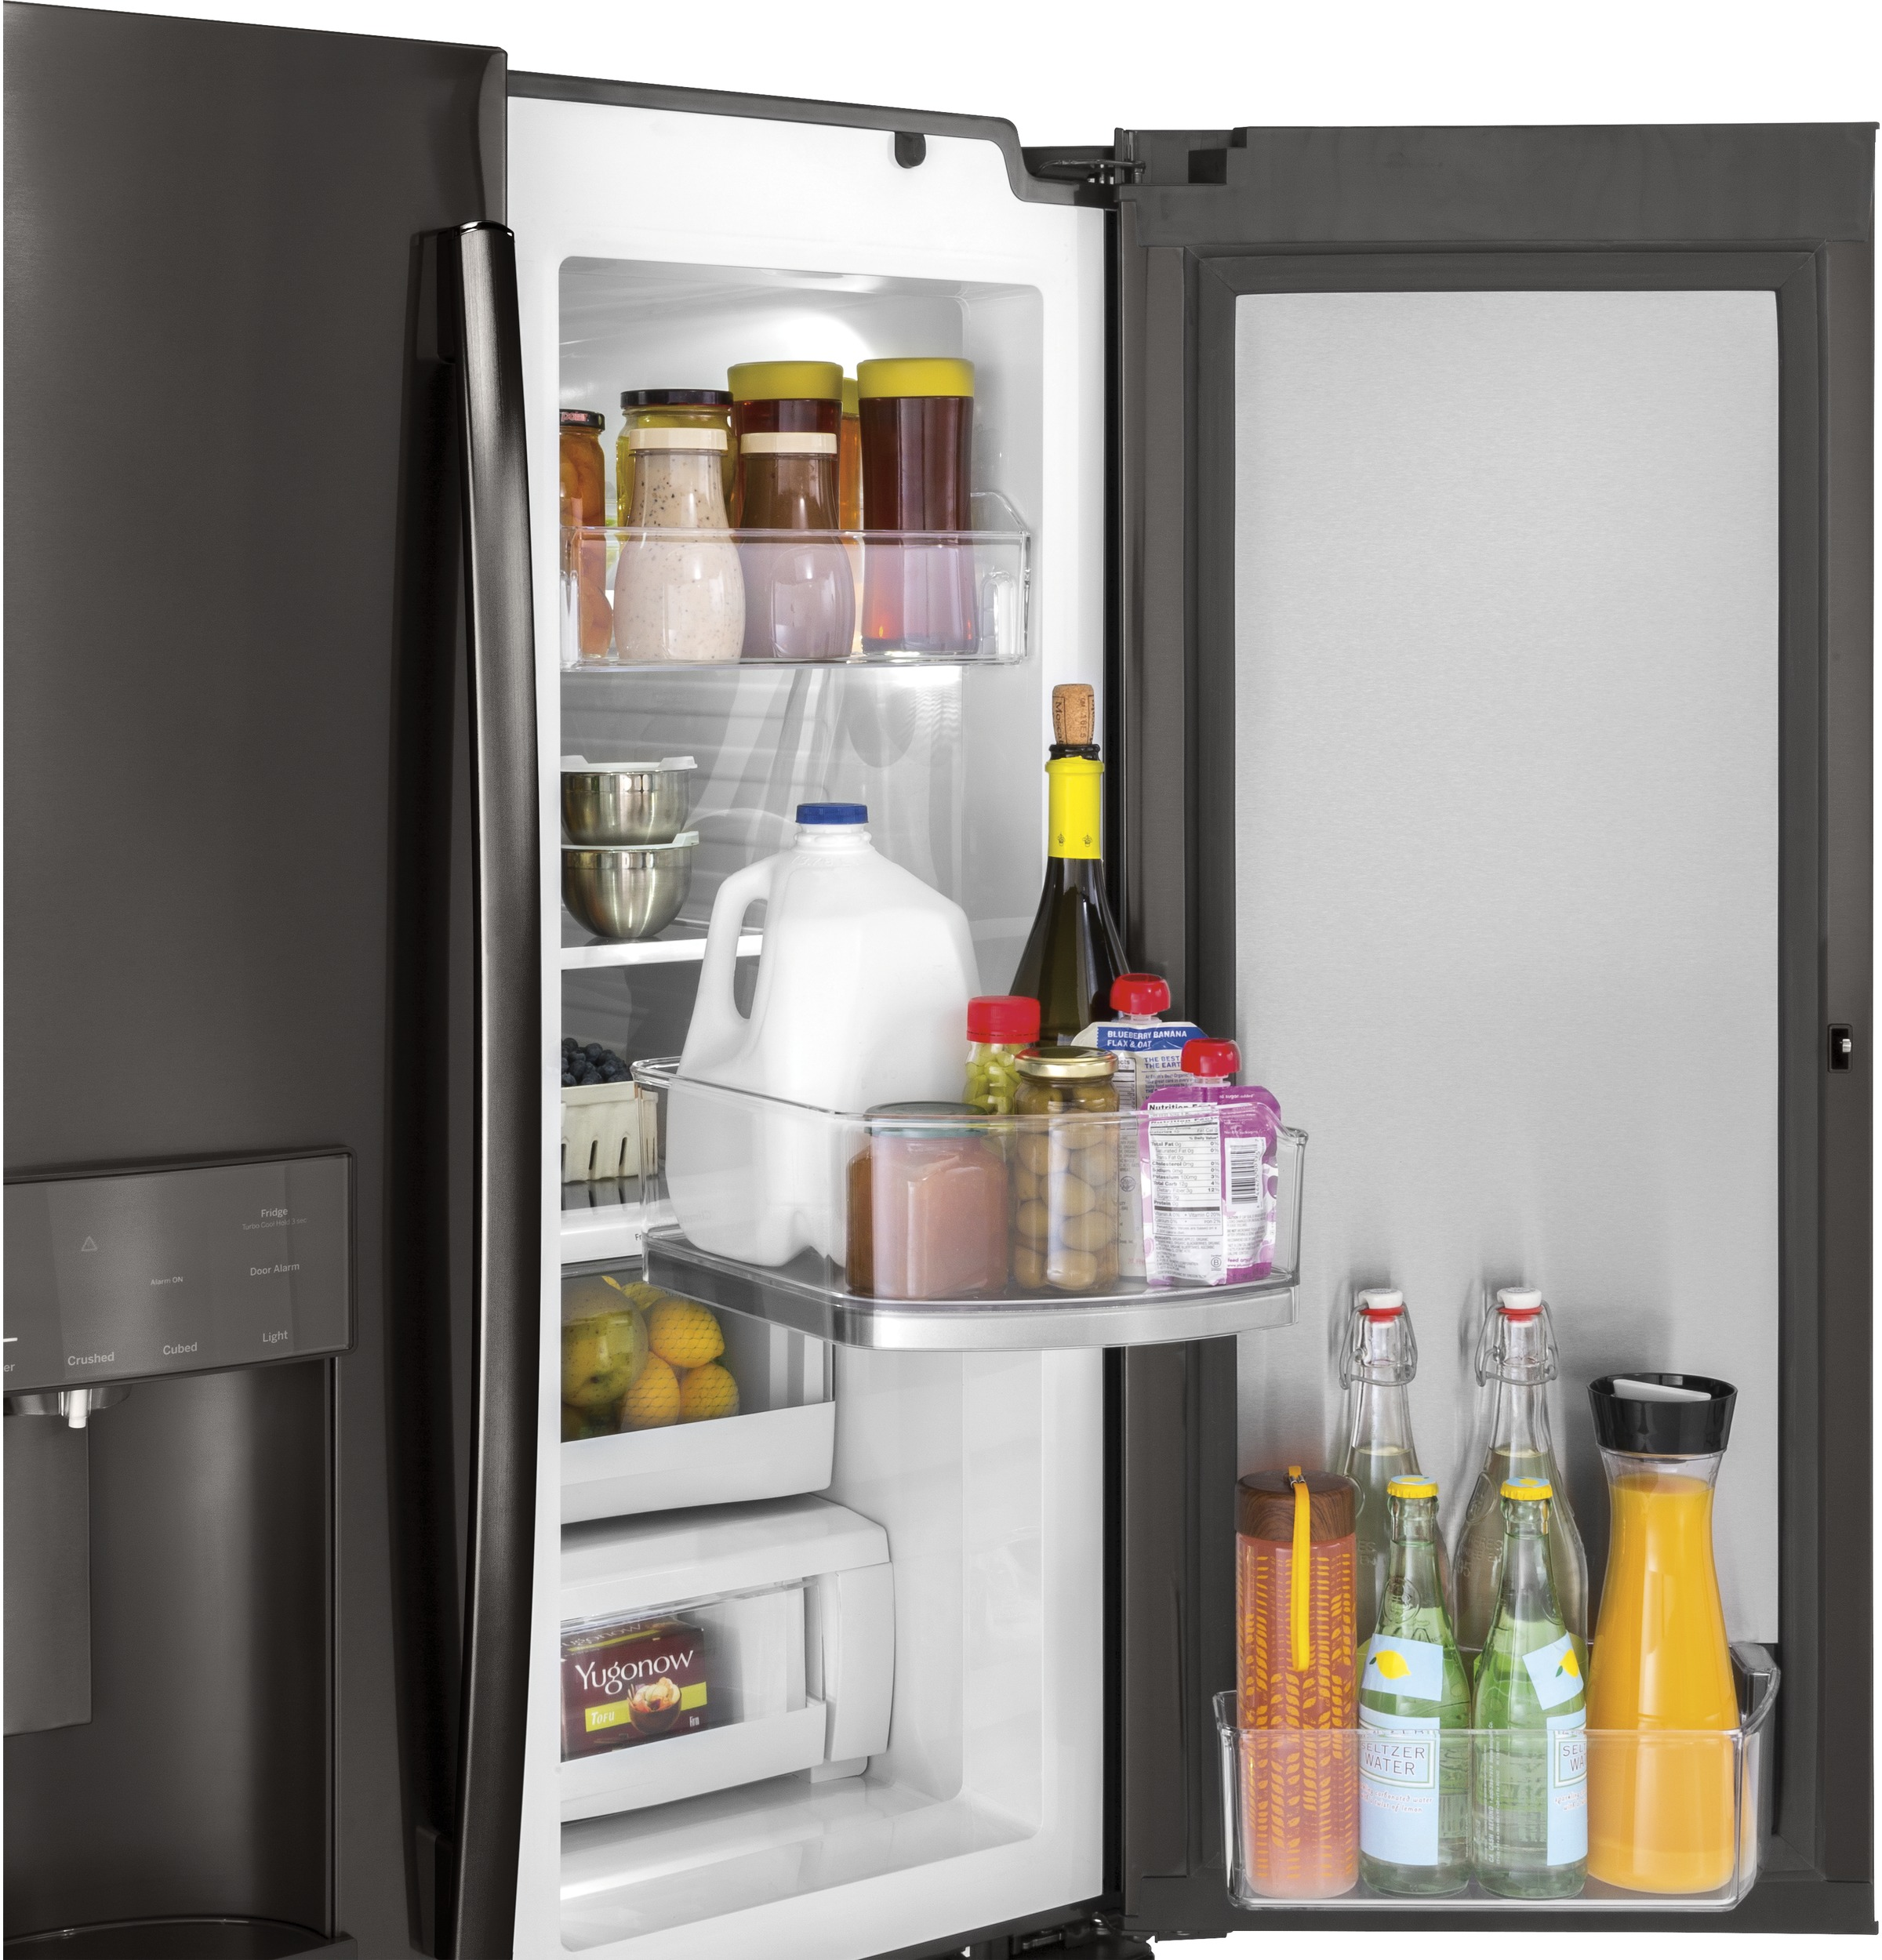 Model: GFD28GBLTS | GE® 27.8 Cu. Ft. French-Door Refrigerator with Door In Door